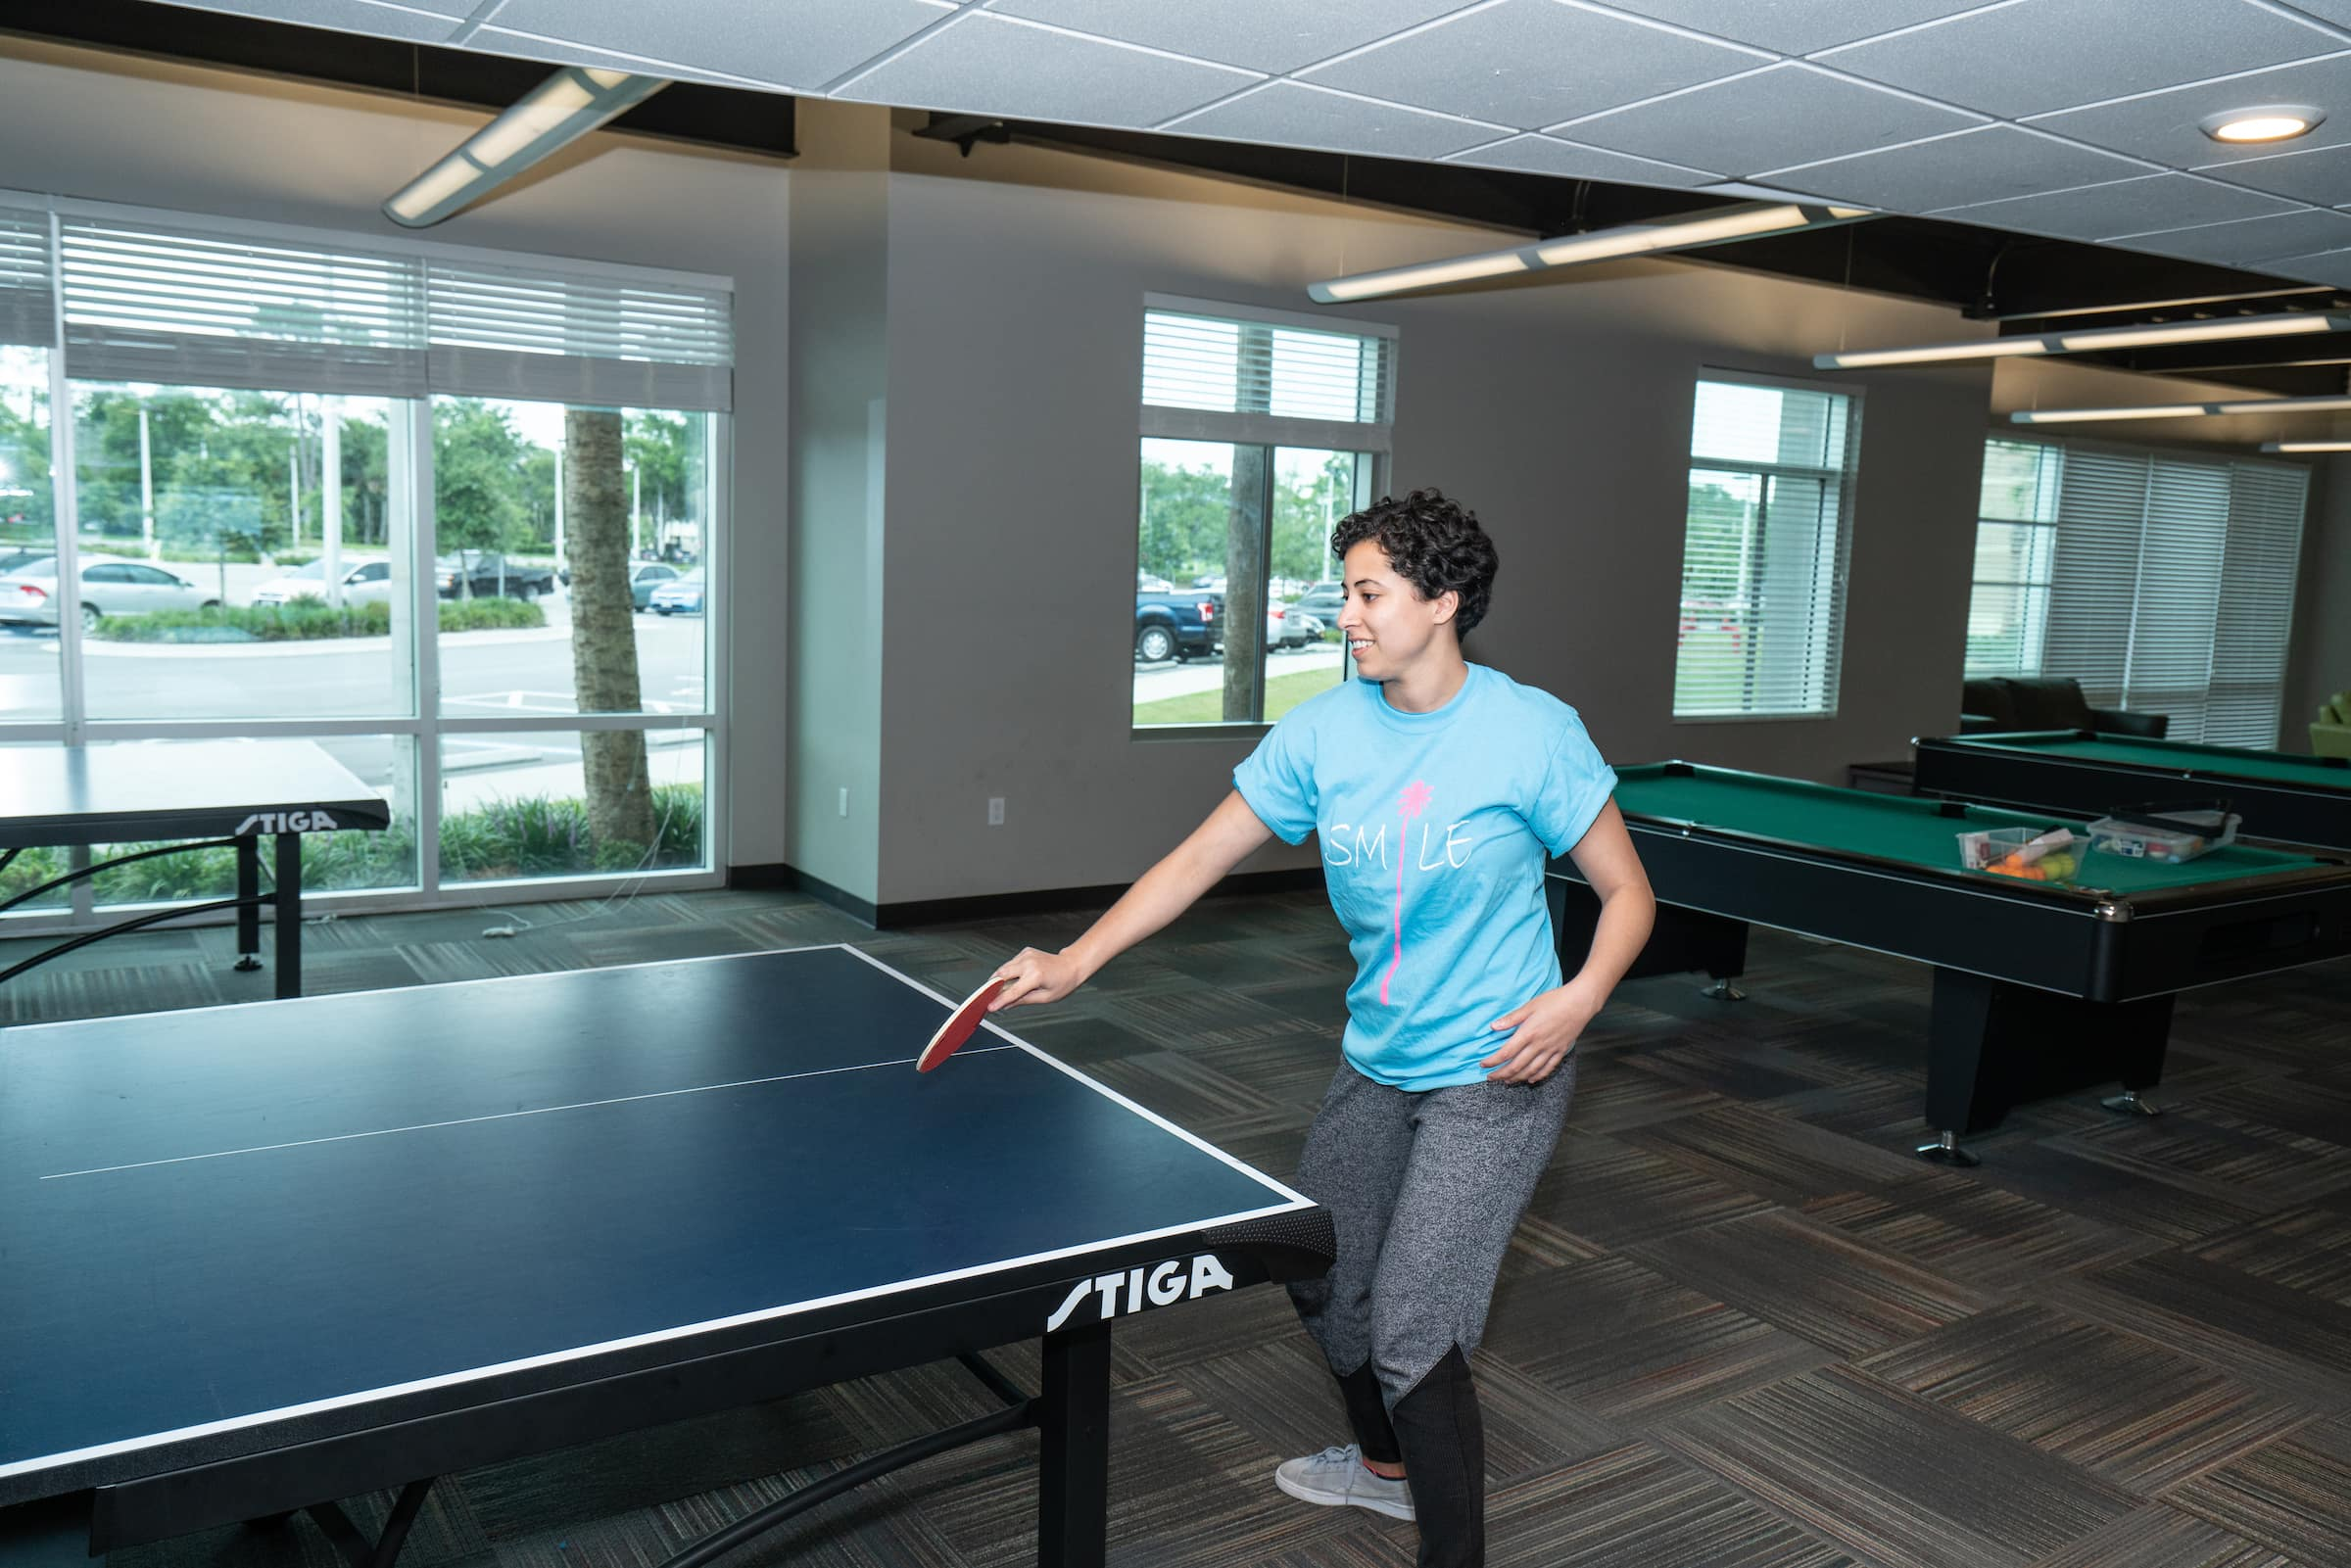 A student plays ping pong with a pool table in the background in New hall.